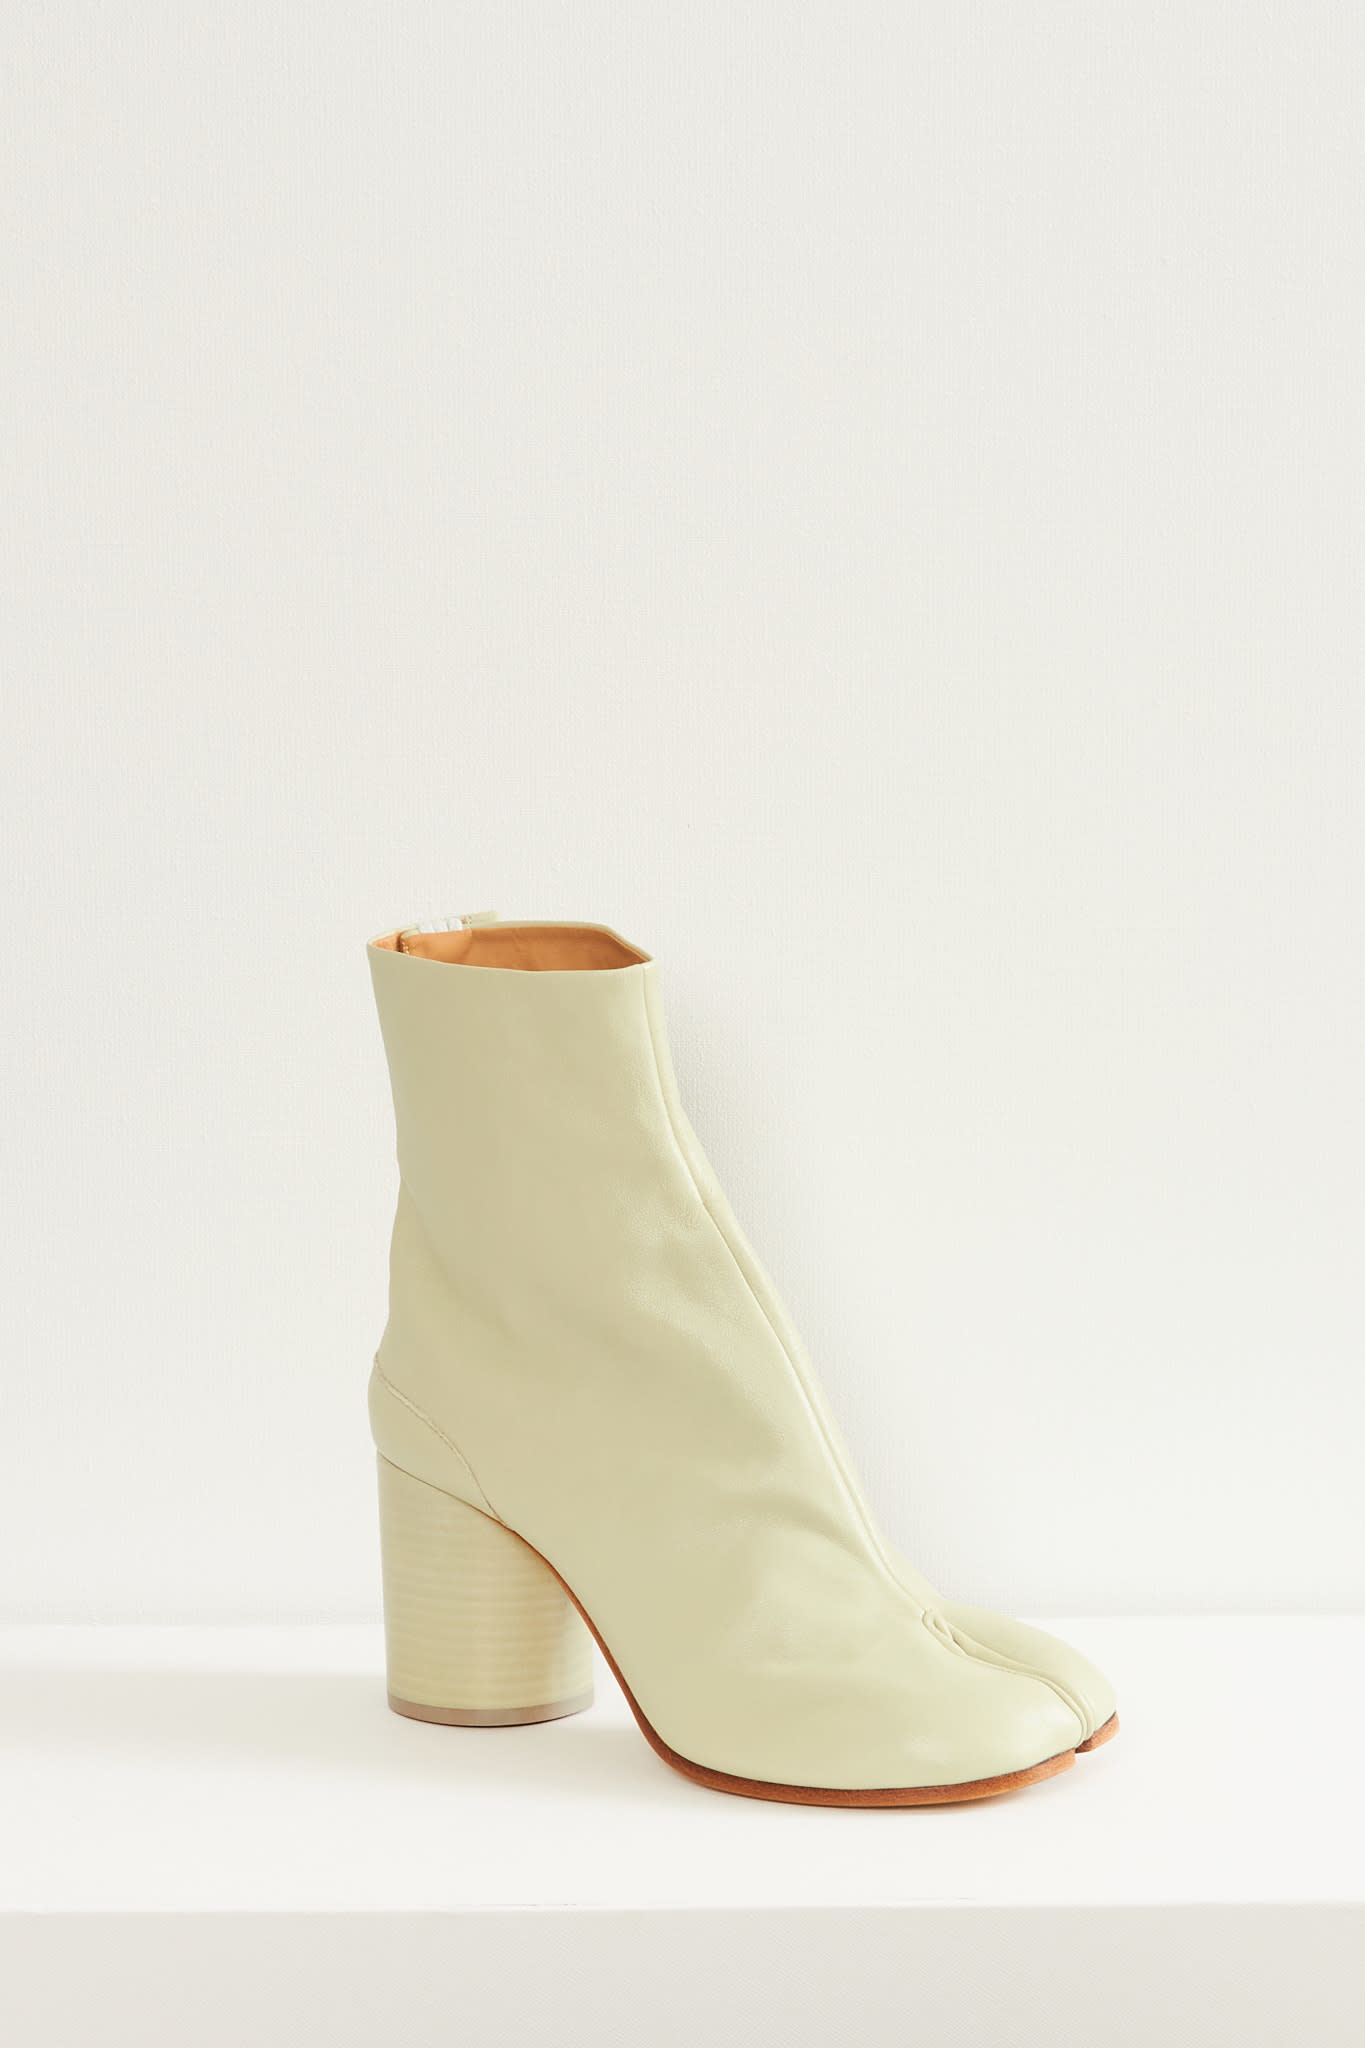 Maison Margiela - Ankle boot MM